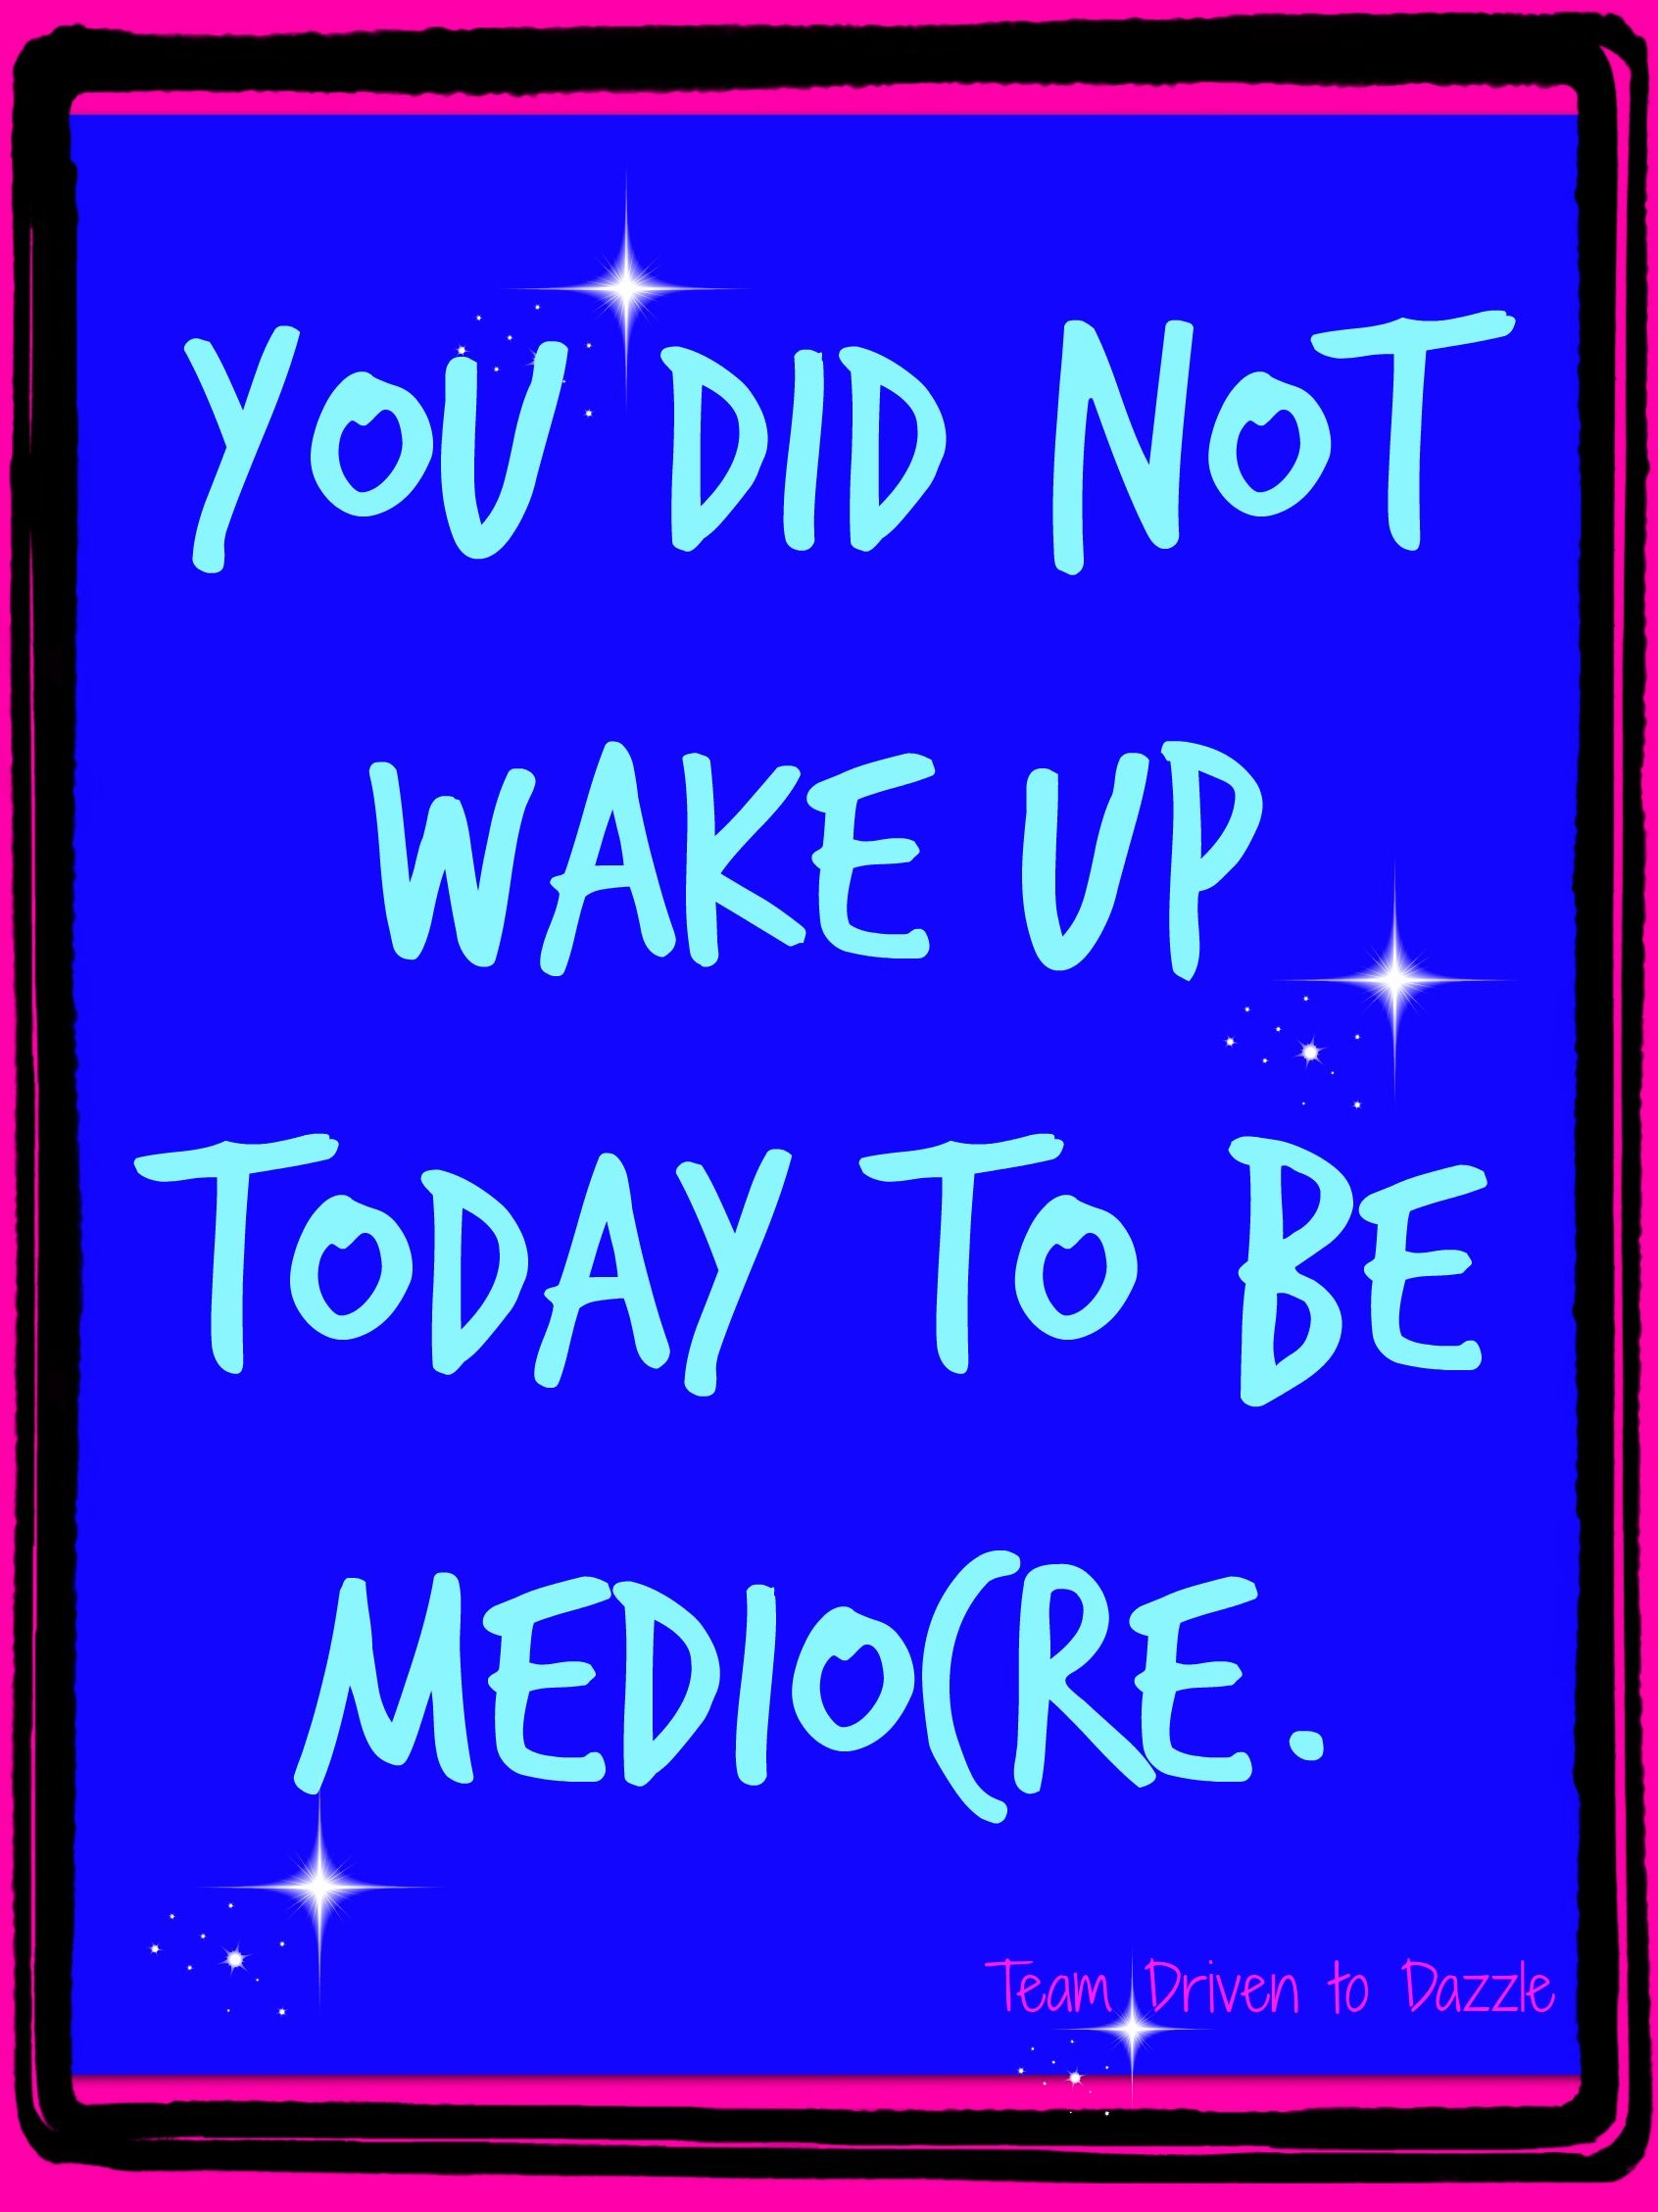 You did not wake up today to be mediocre. Give today your best! Need motivation and inspiration working toward your best? Click on the link or image and apply to my next challenge group!  https://jacquelinehurley.wufoo.com/forms/z1j8i1s302nf9u9/ #teamdriventodazzle #jacquelinehurley